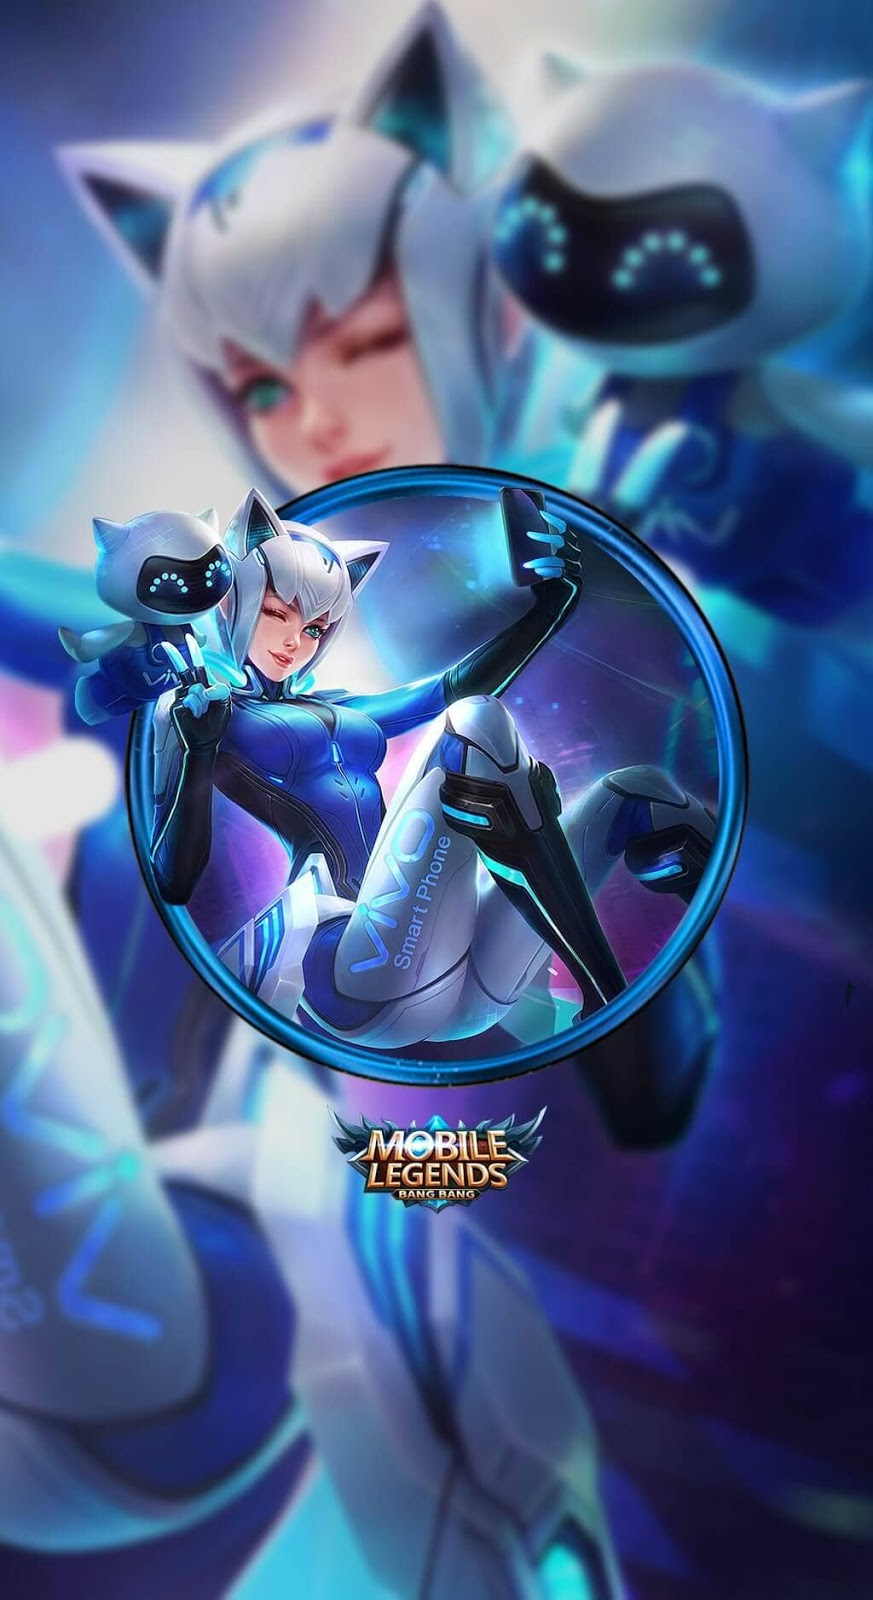 Wallpaper Eudora Vivo Selfie Goddess Skins Mobile Legends HD for Mobile